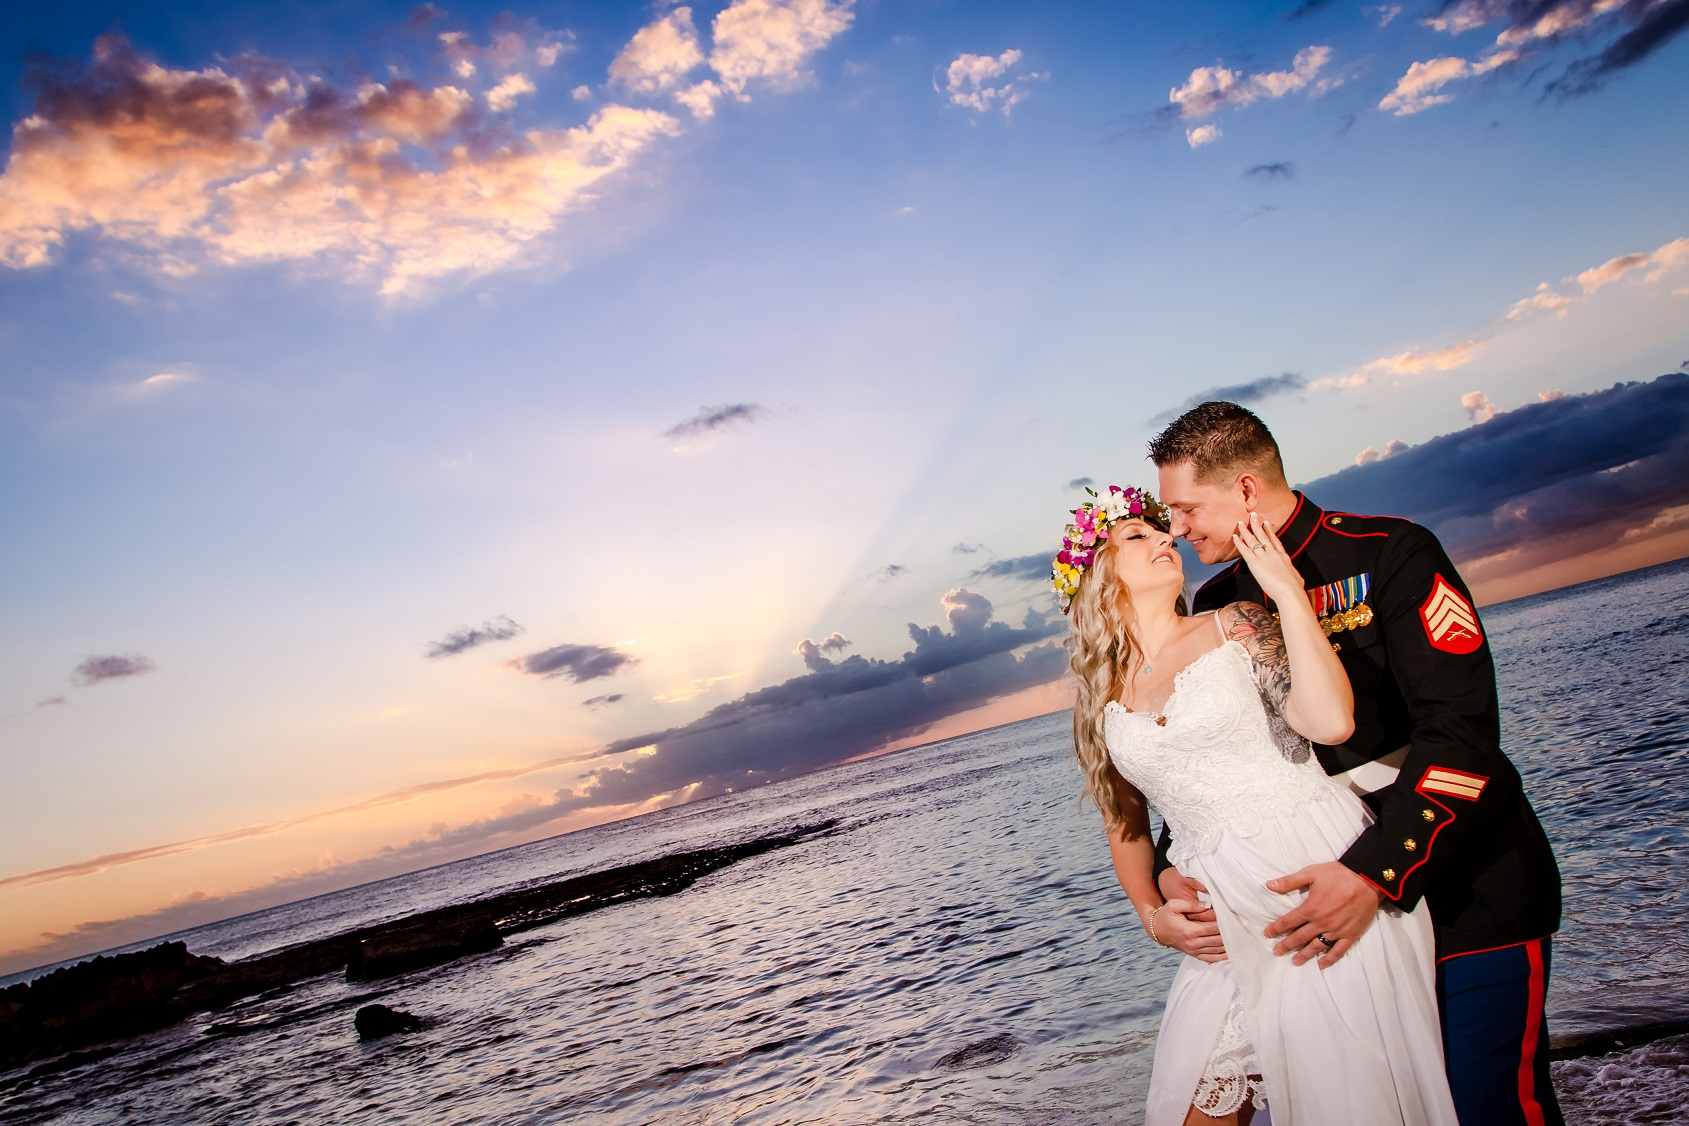 bride groom wedding portrait sunset beach oahu hawaii